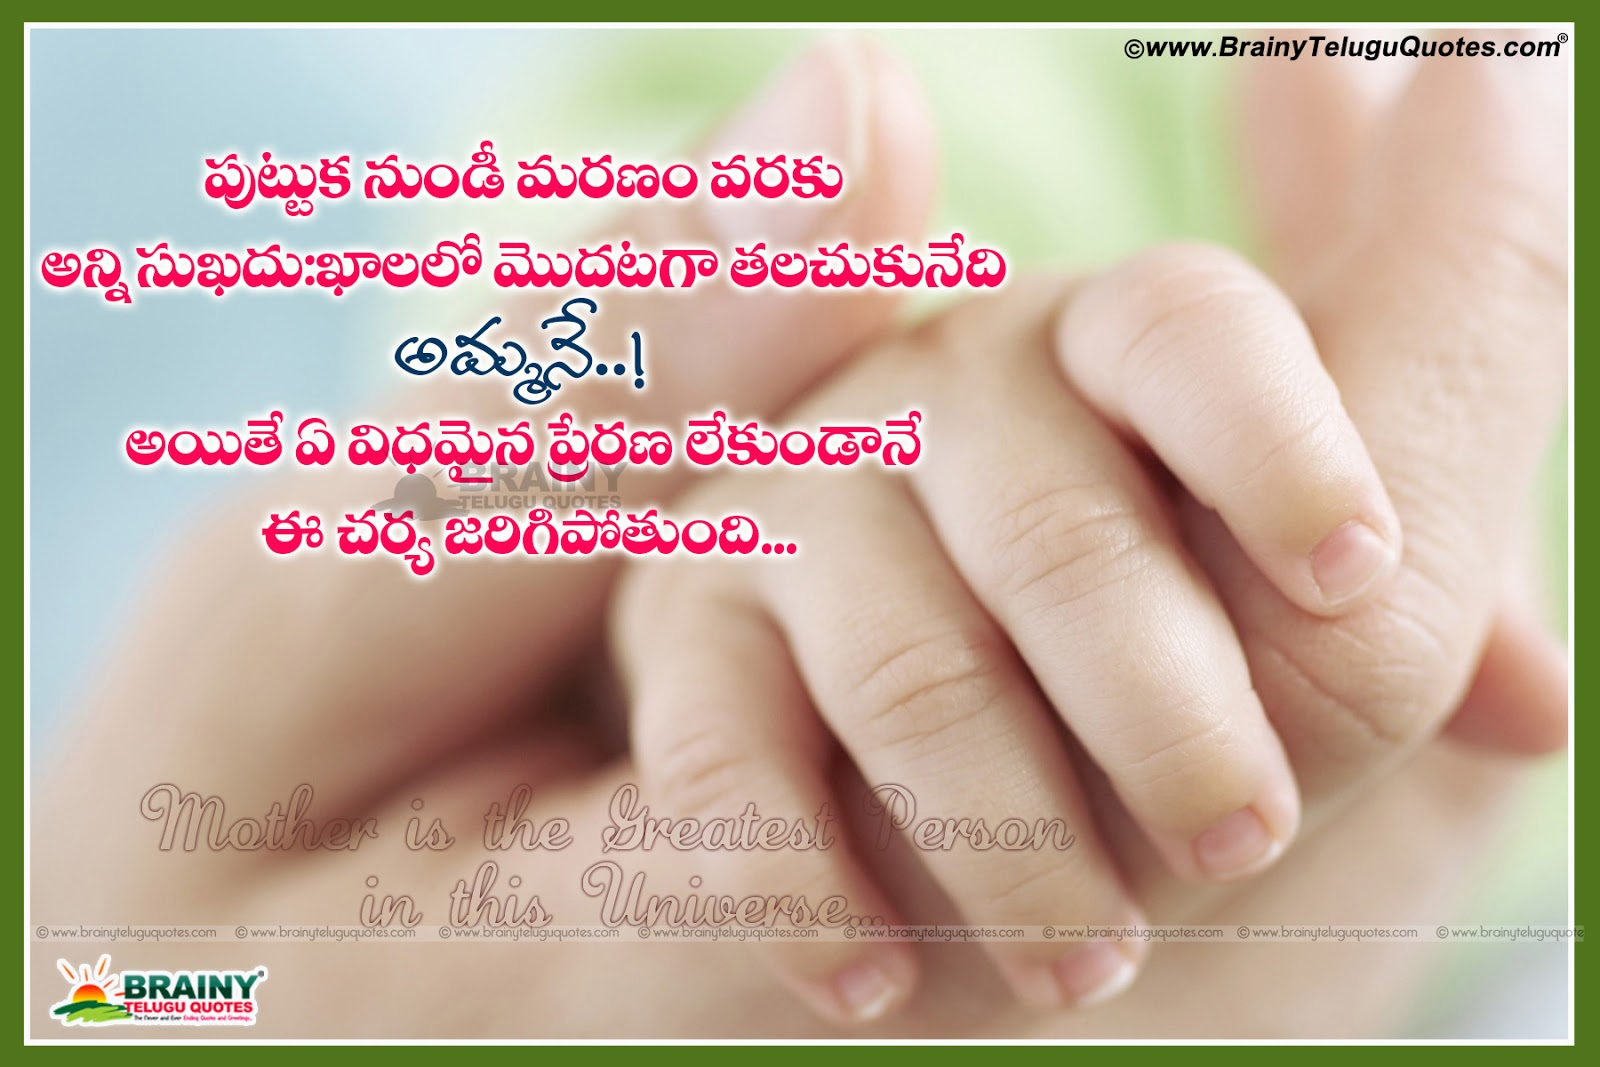 Awesome Telugu Mother Amma Heart Touching Quotes With Images